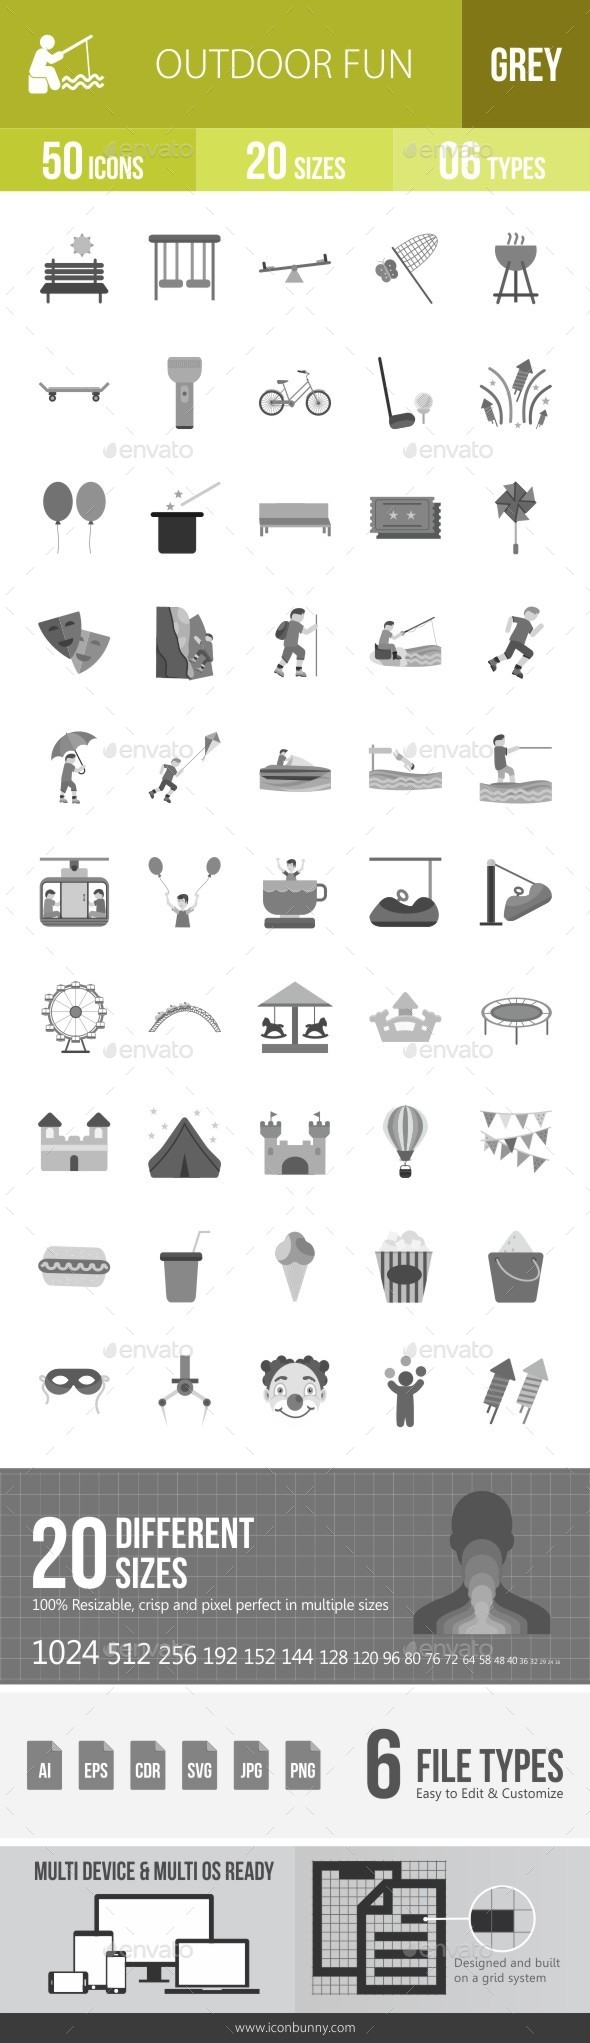 Outdoor Fun Greyscale Icons - Icons